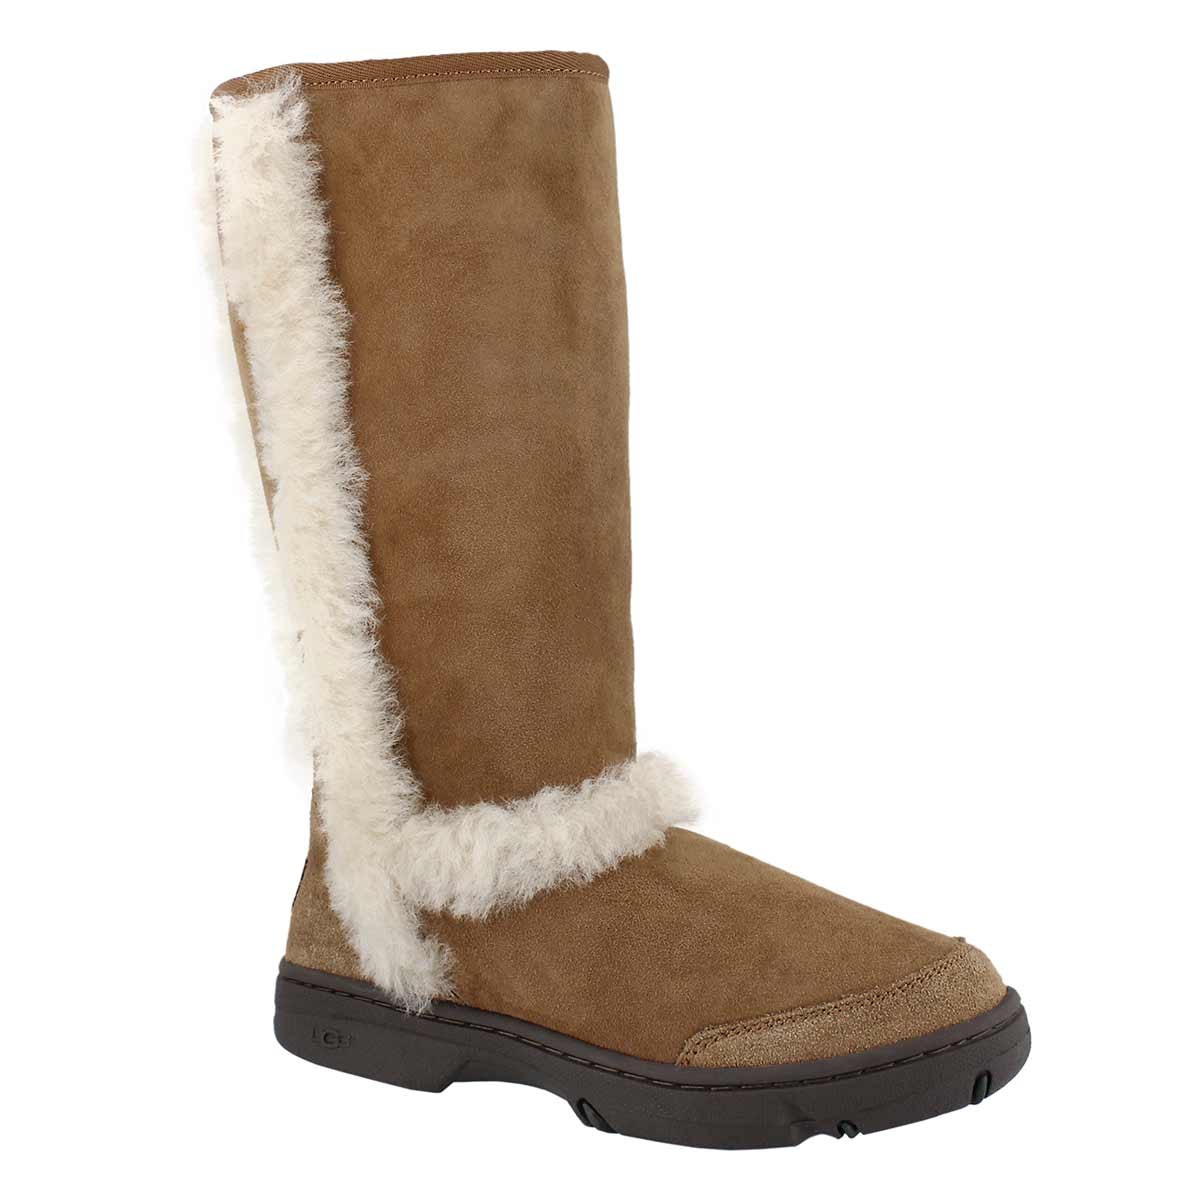 Lds Sunburst ches tall sheepskin boot